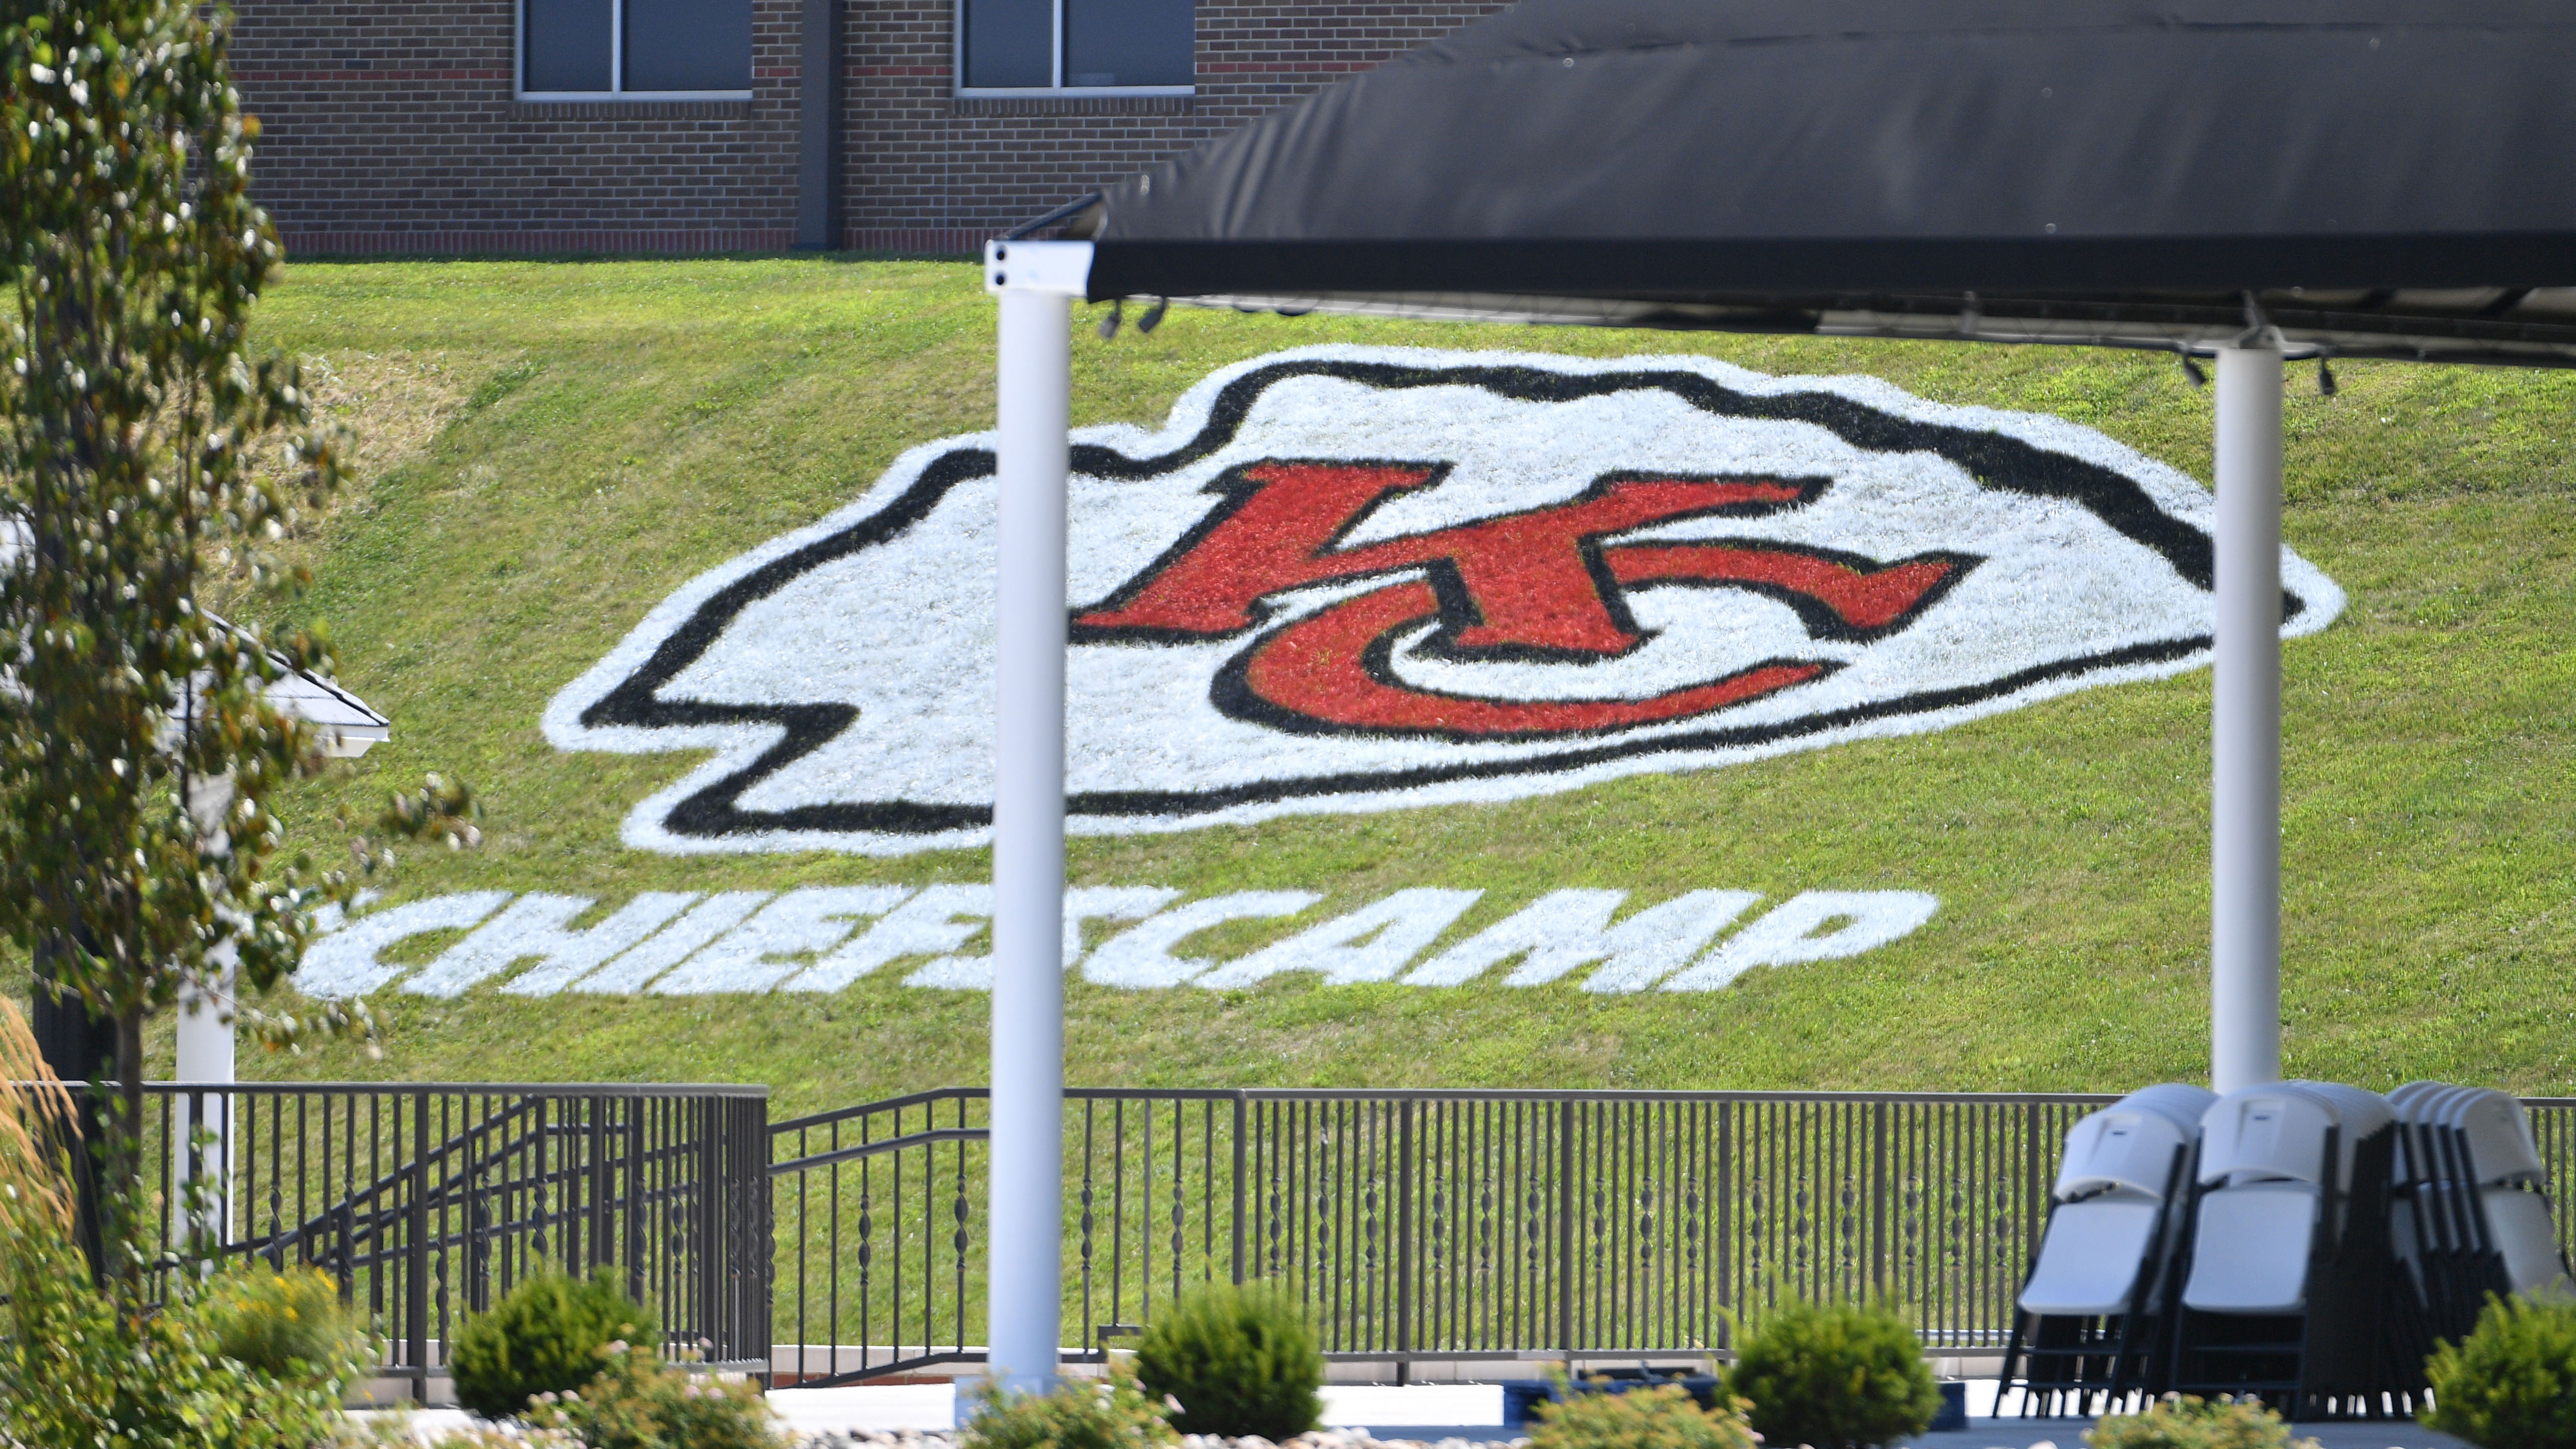 The Kansas City Chiefs have held training camp at Missouri Western State University since the 2010 season.